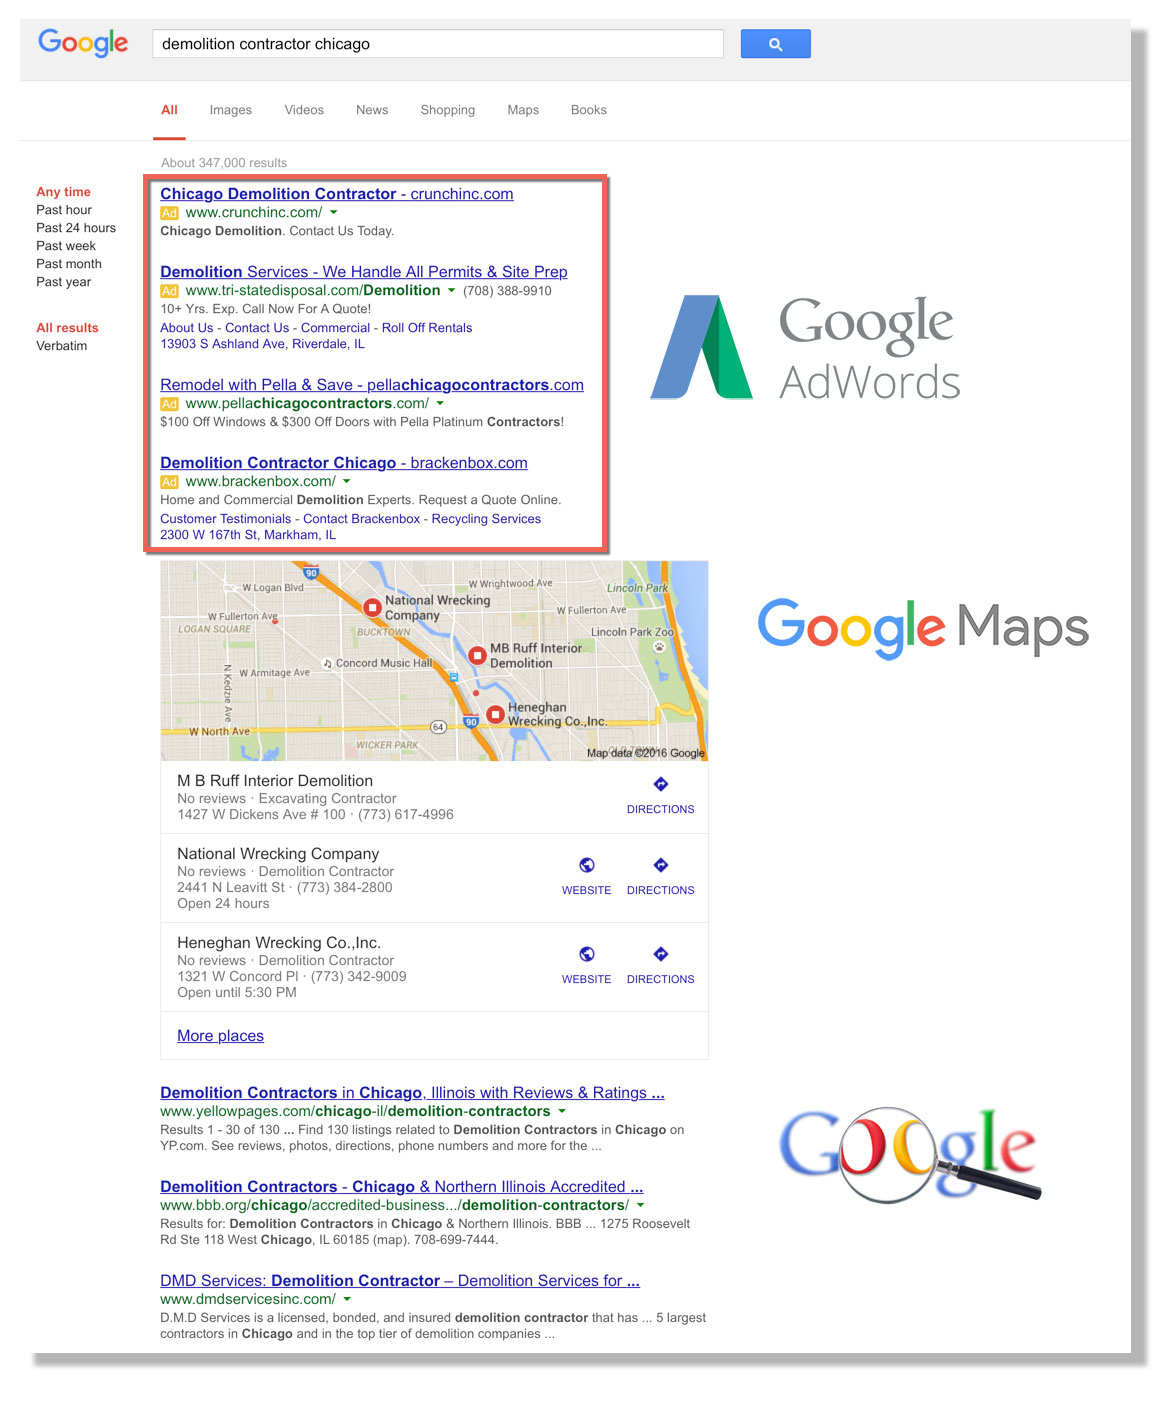 Google Adwords - Paid Search